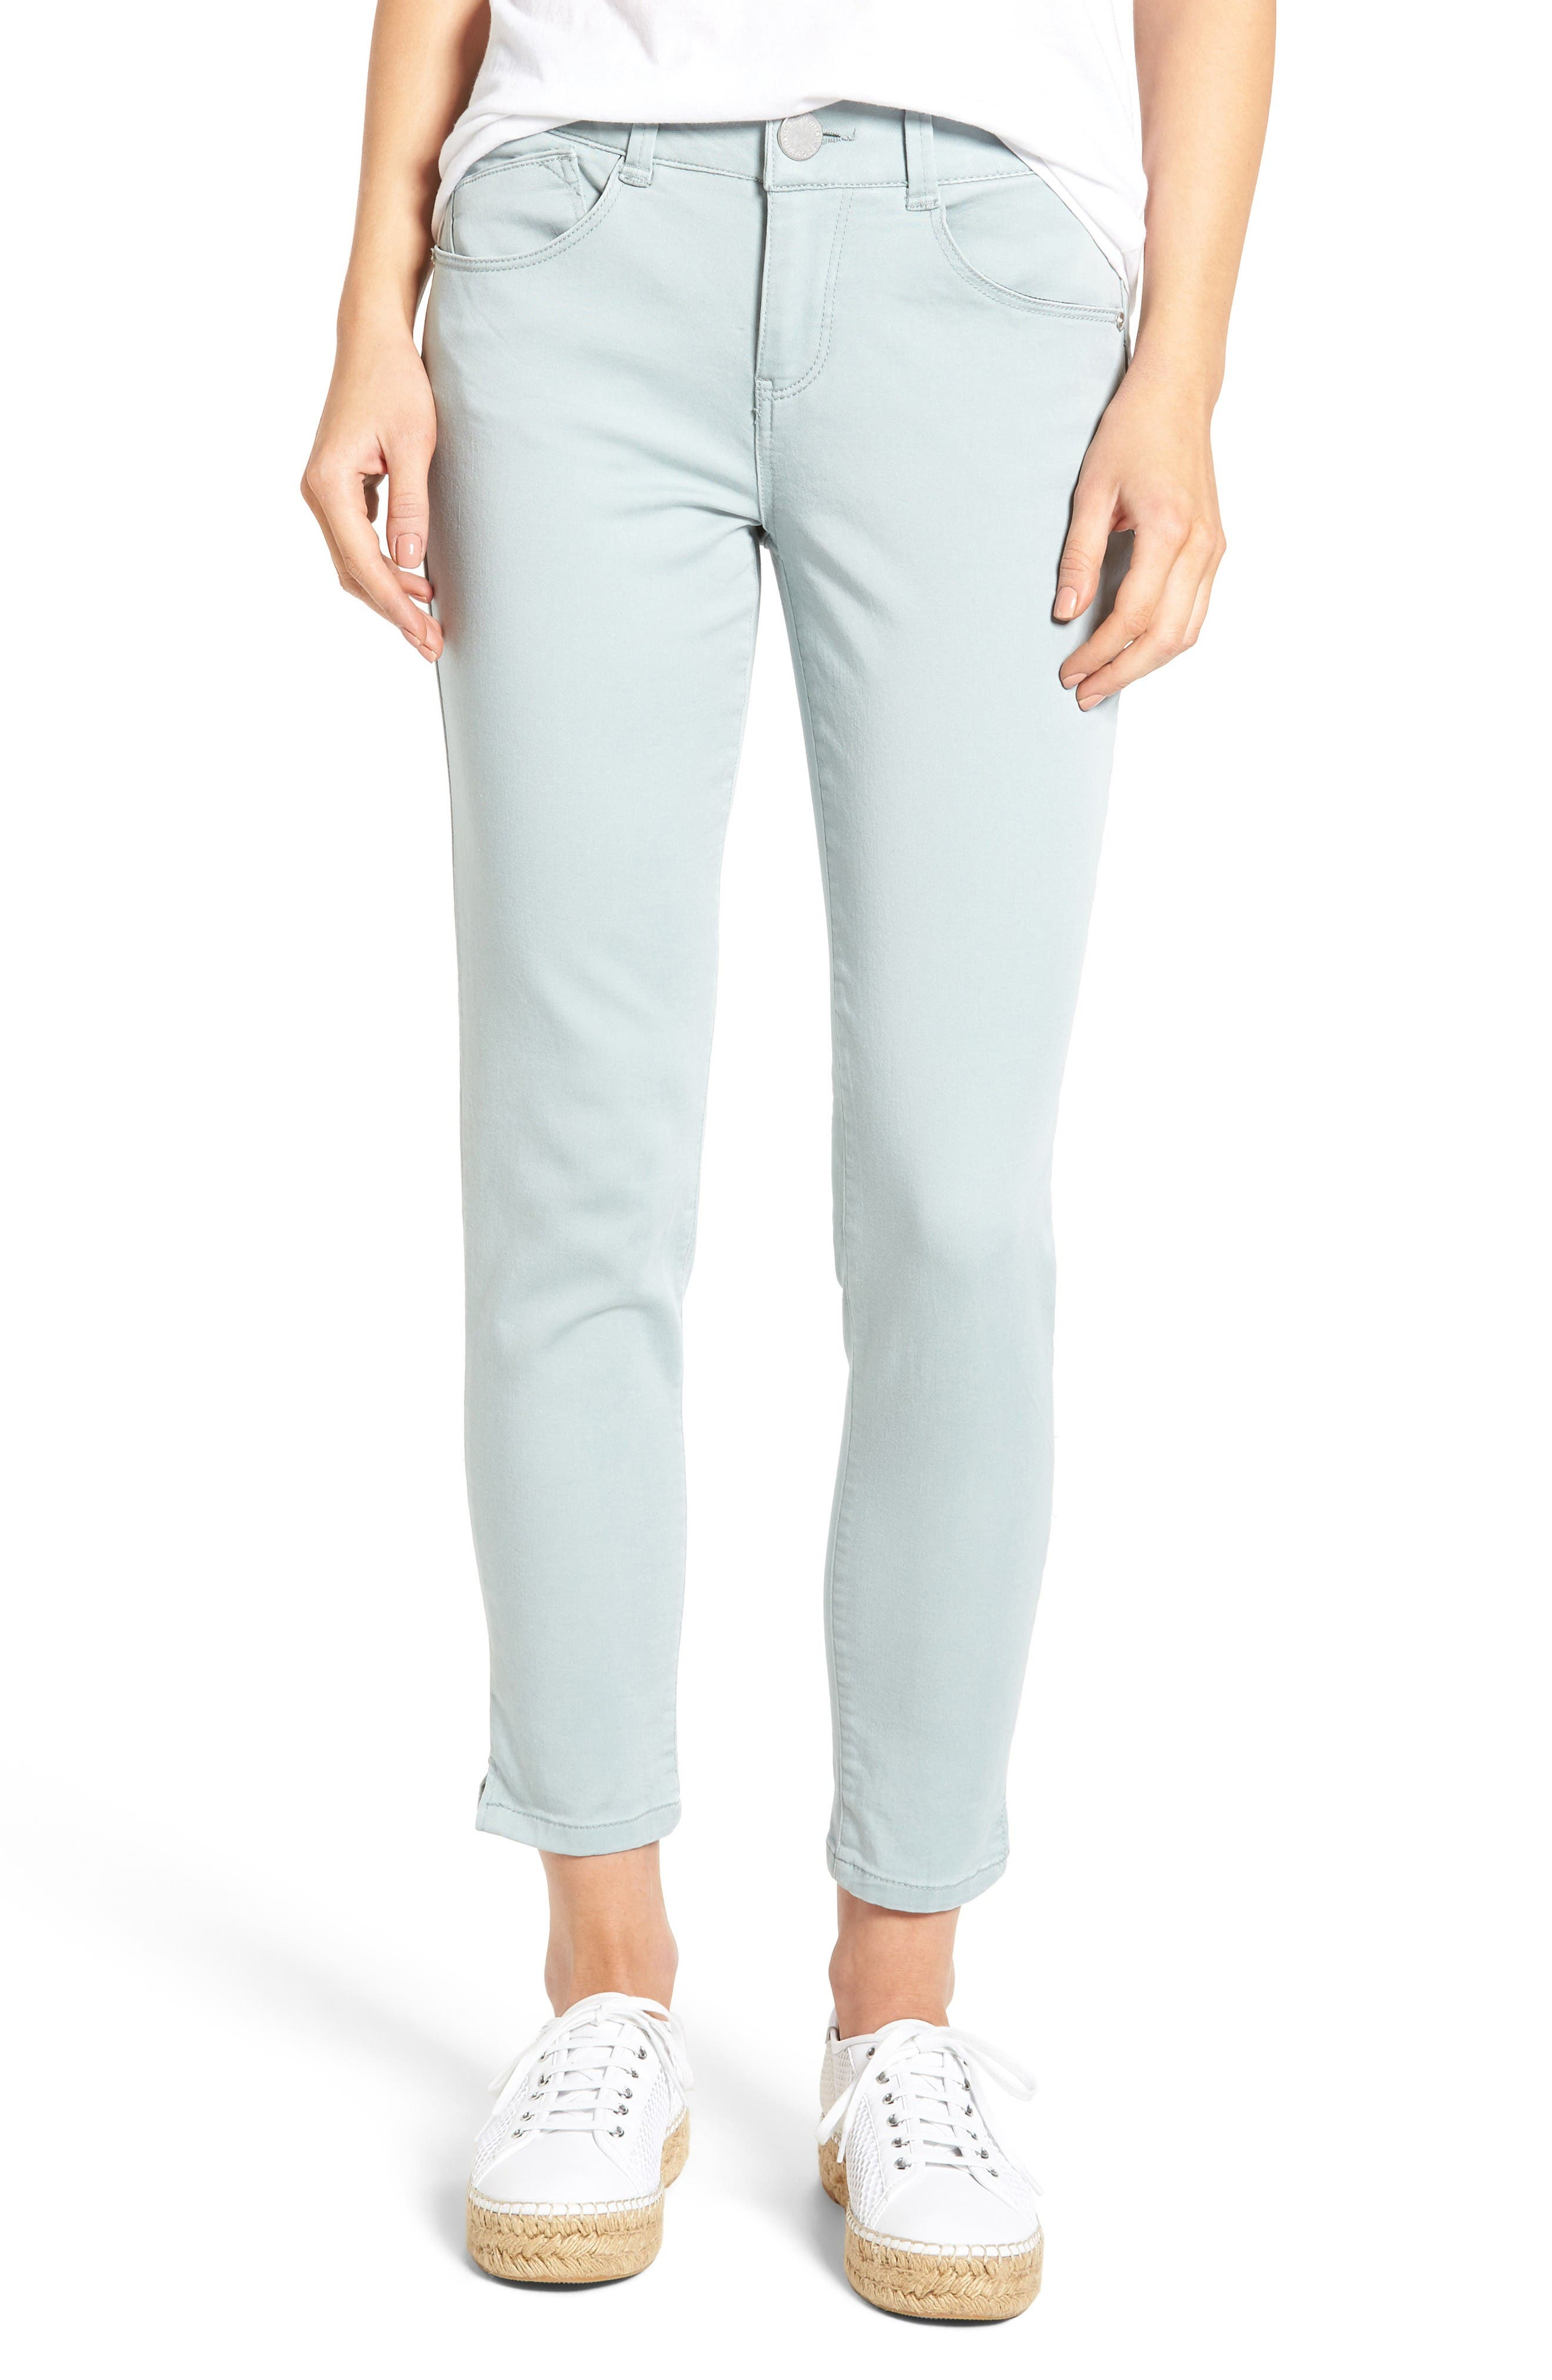 Main Image - Wit & Wisdom Ab-solution Stretch Twill Skinny Pants (Regular & Petite) (Nordstrom Exclusive)